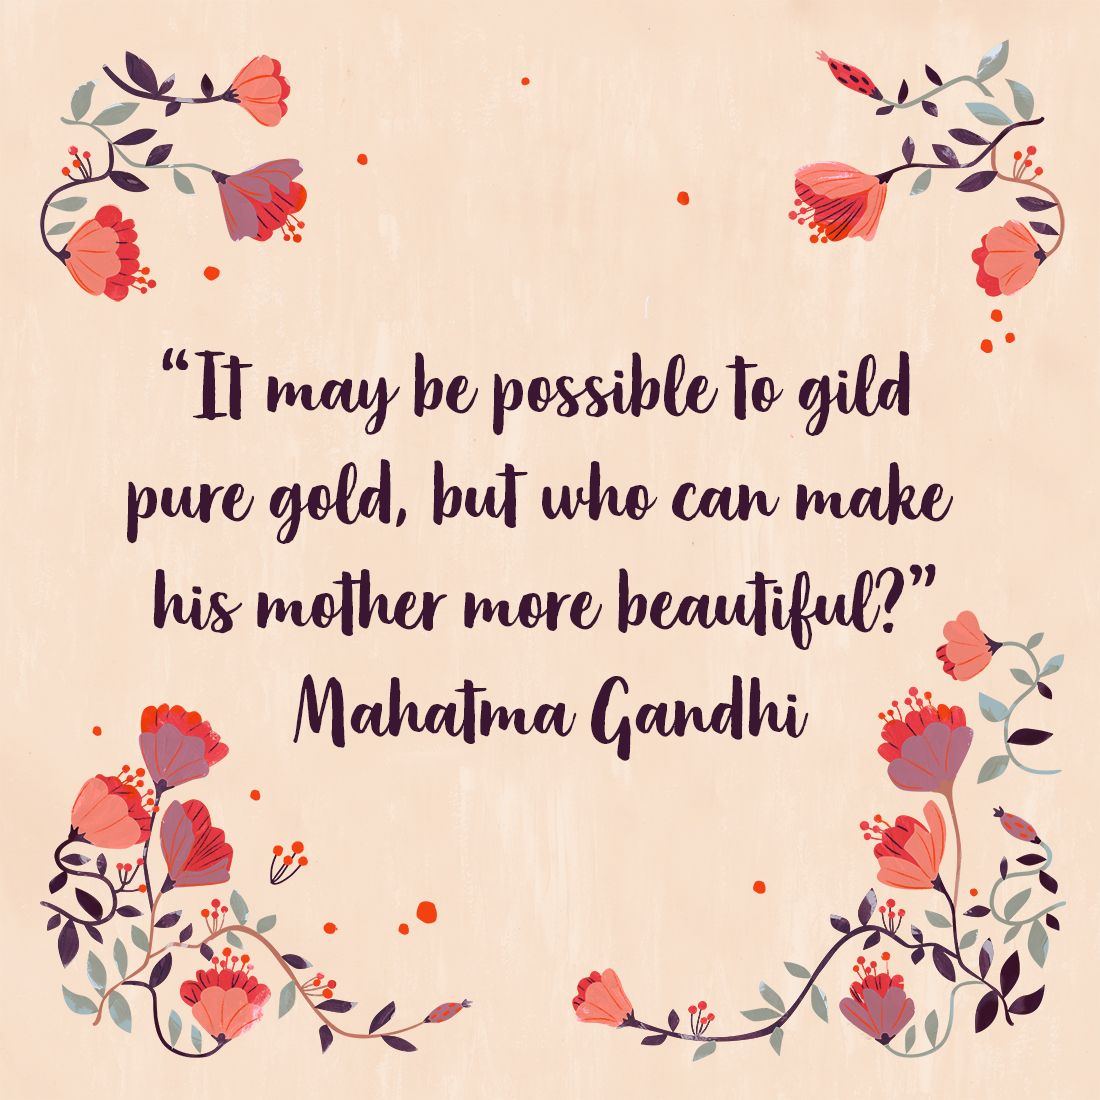 A Beautiful Mom Quote Ny Mahatma Gandhi It May Be Possible To